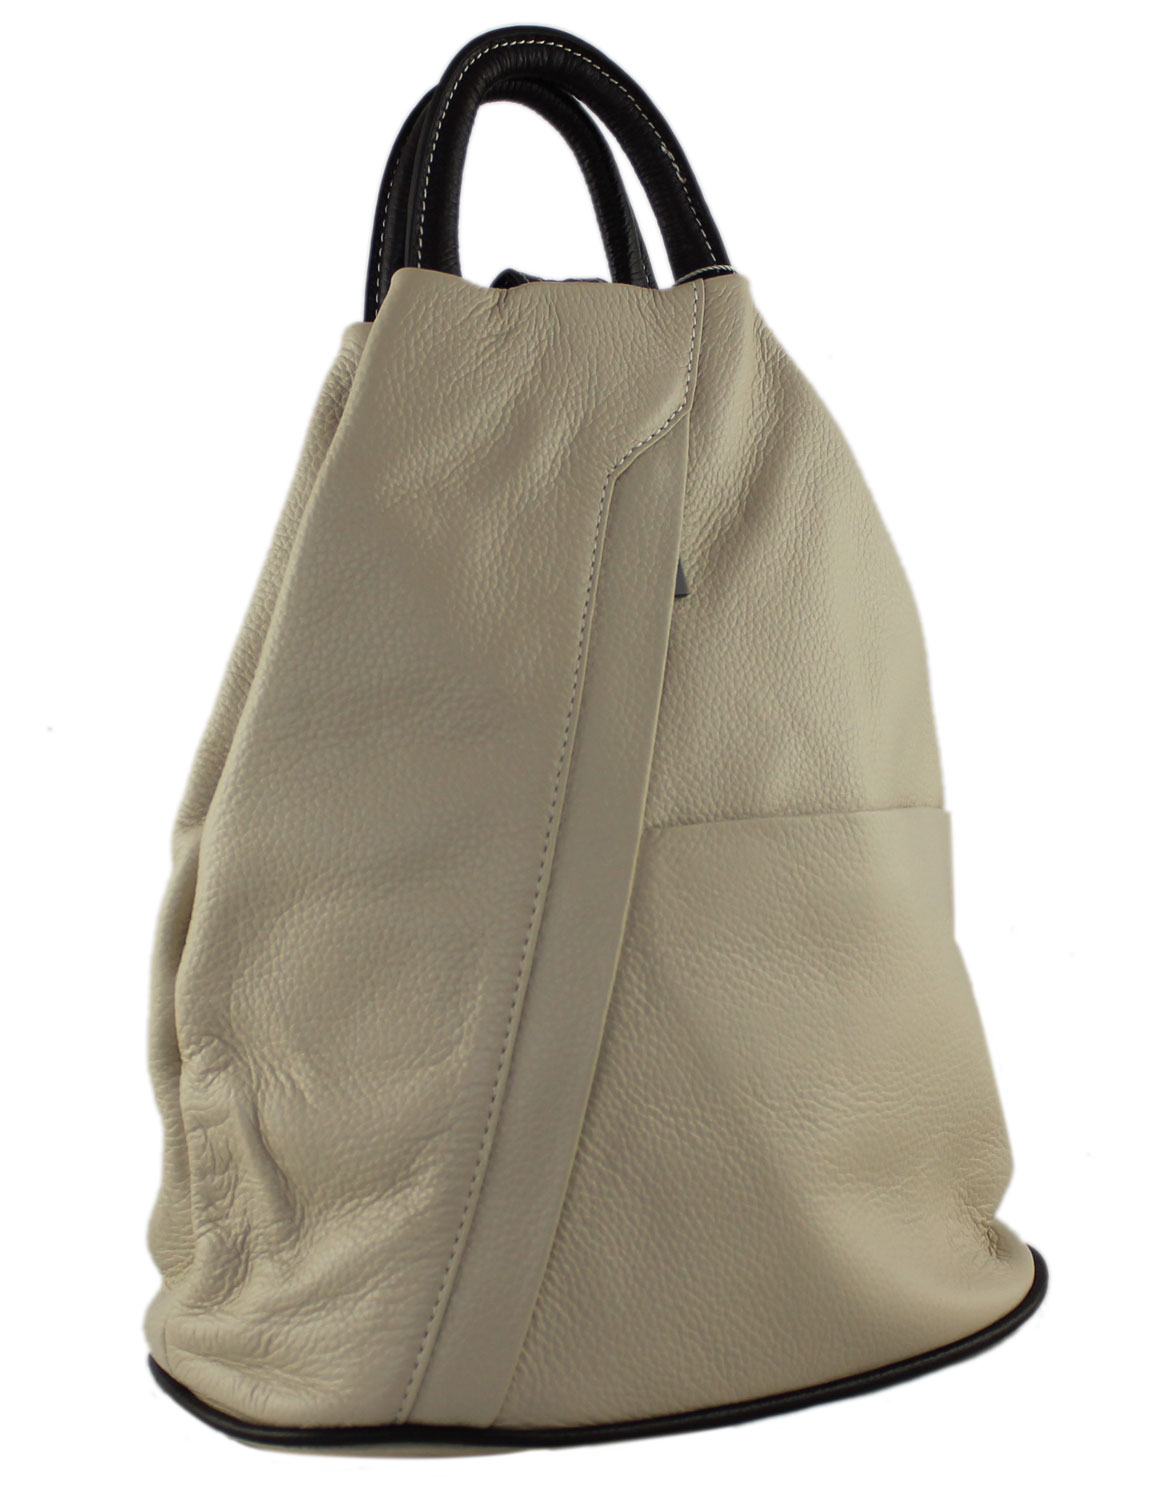 Tuscany Soft Leather Backpack in Off White and Brown